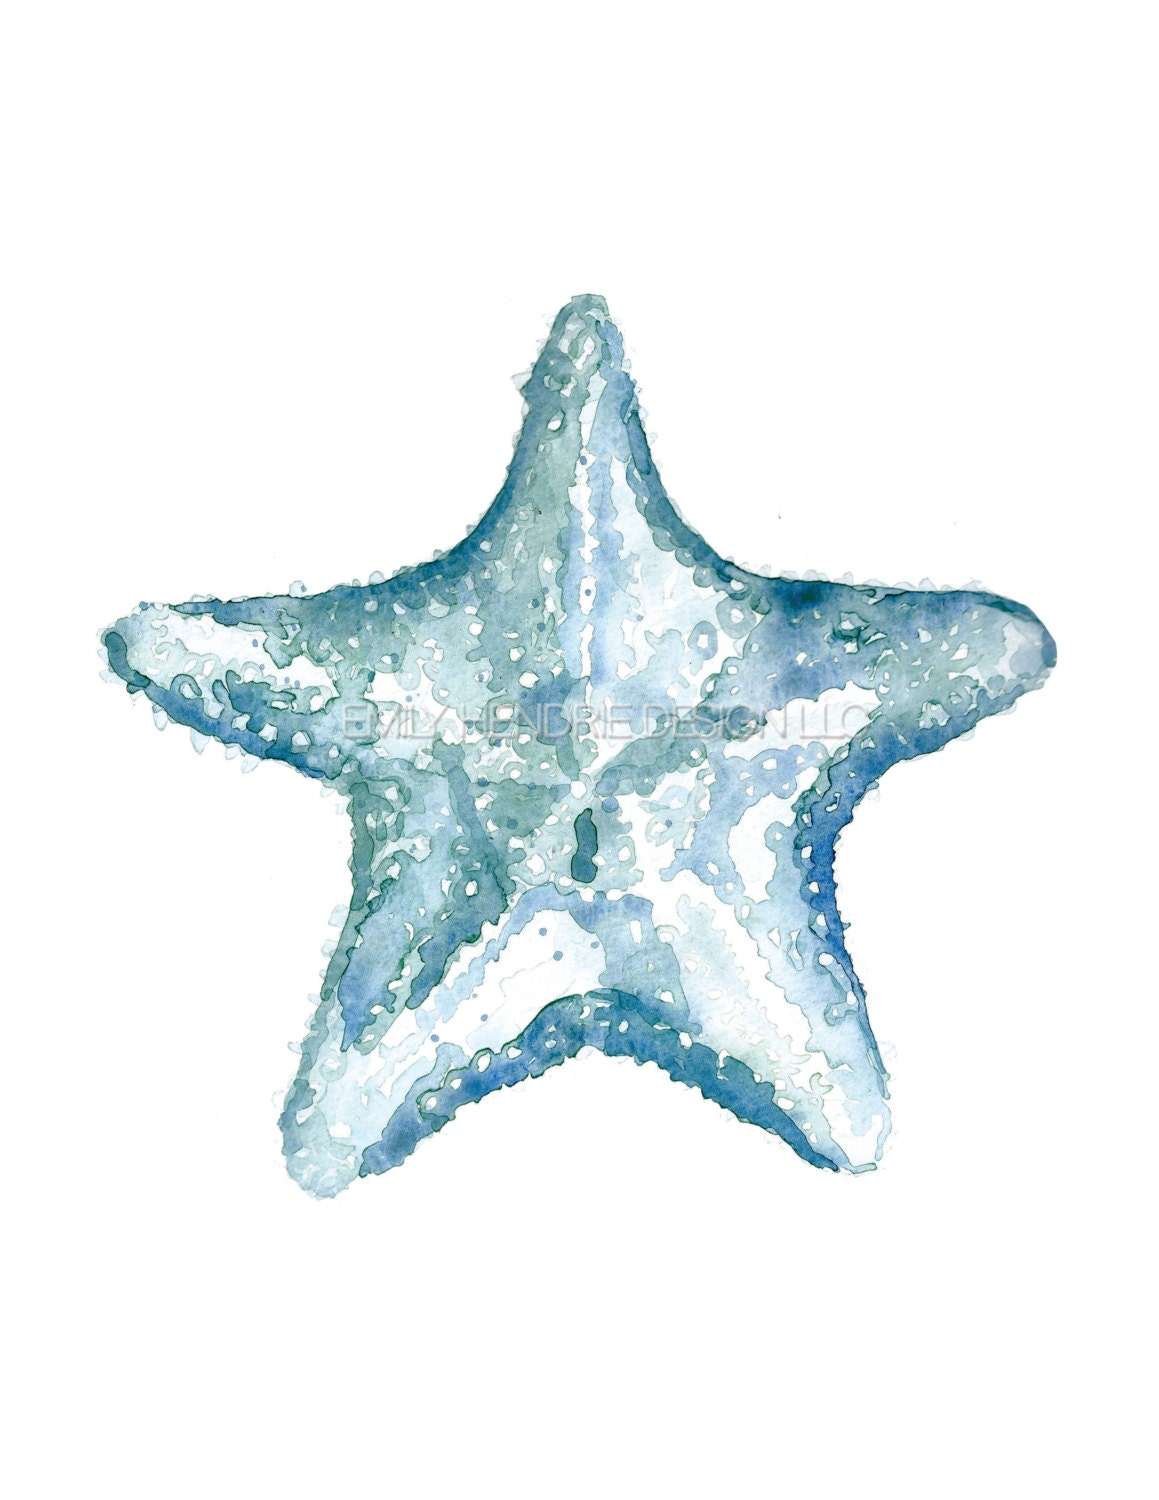 Starfish Watercolor | www.pixshark.com - Images Galleries ...